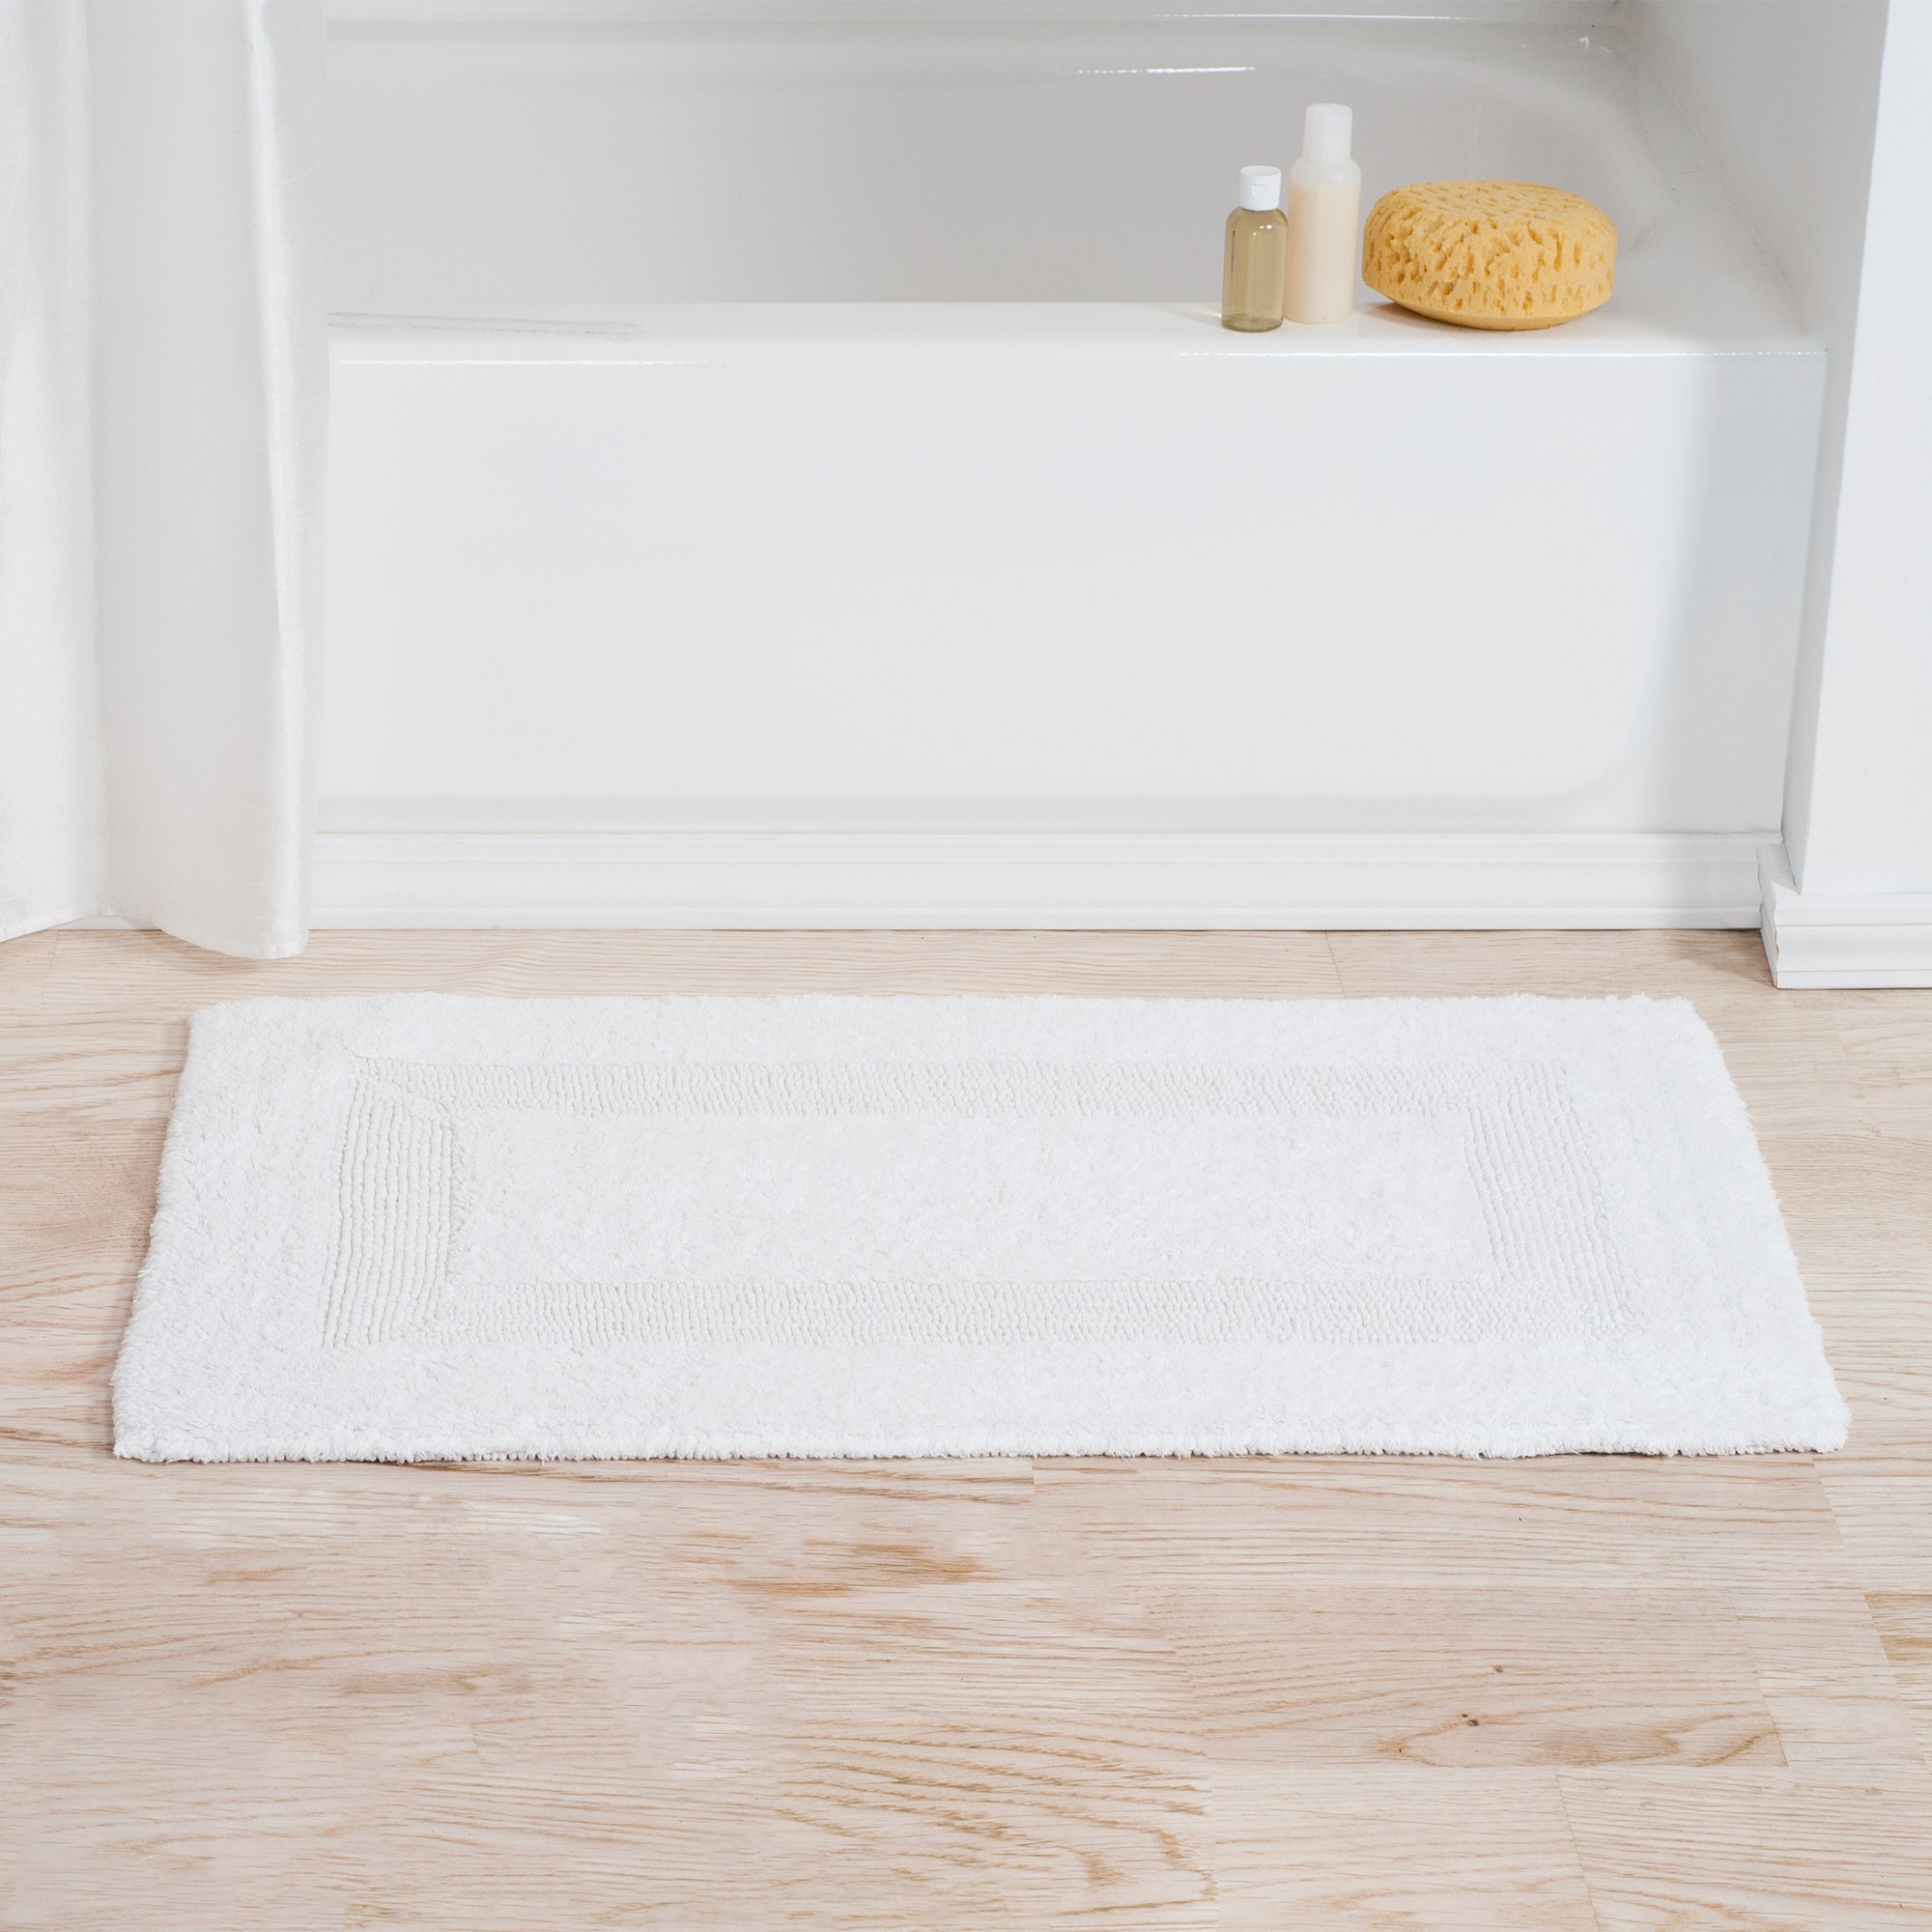 Lavish Home 67-MAT2040-W Reversible Bath Mat, White